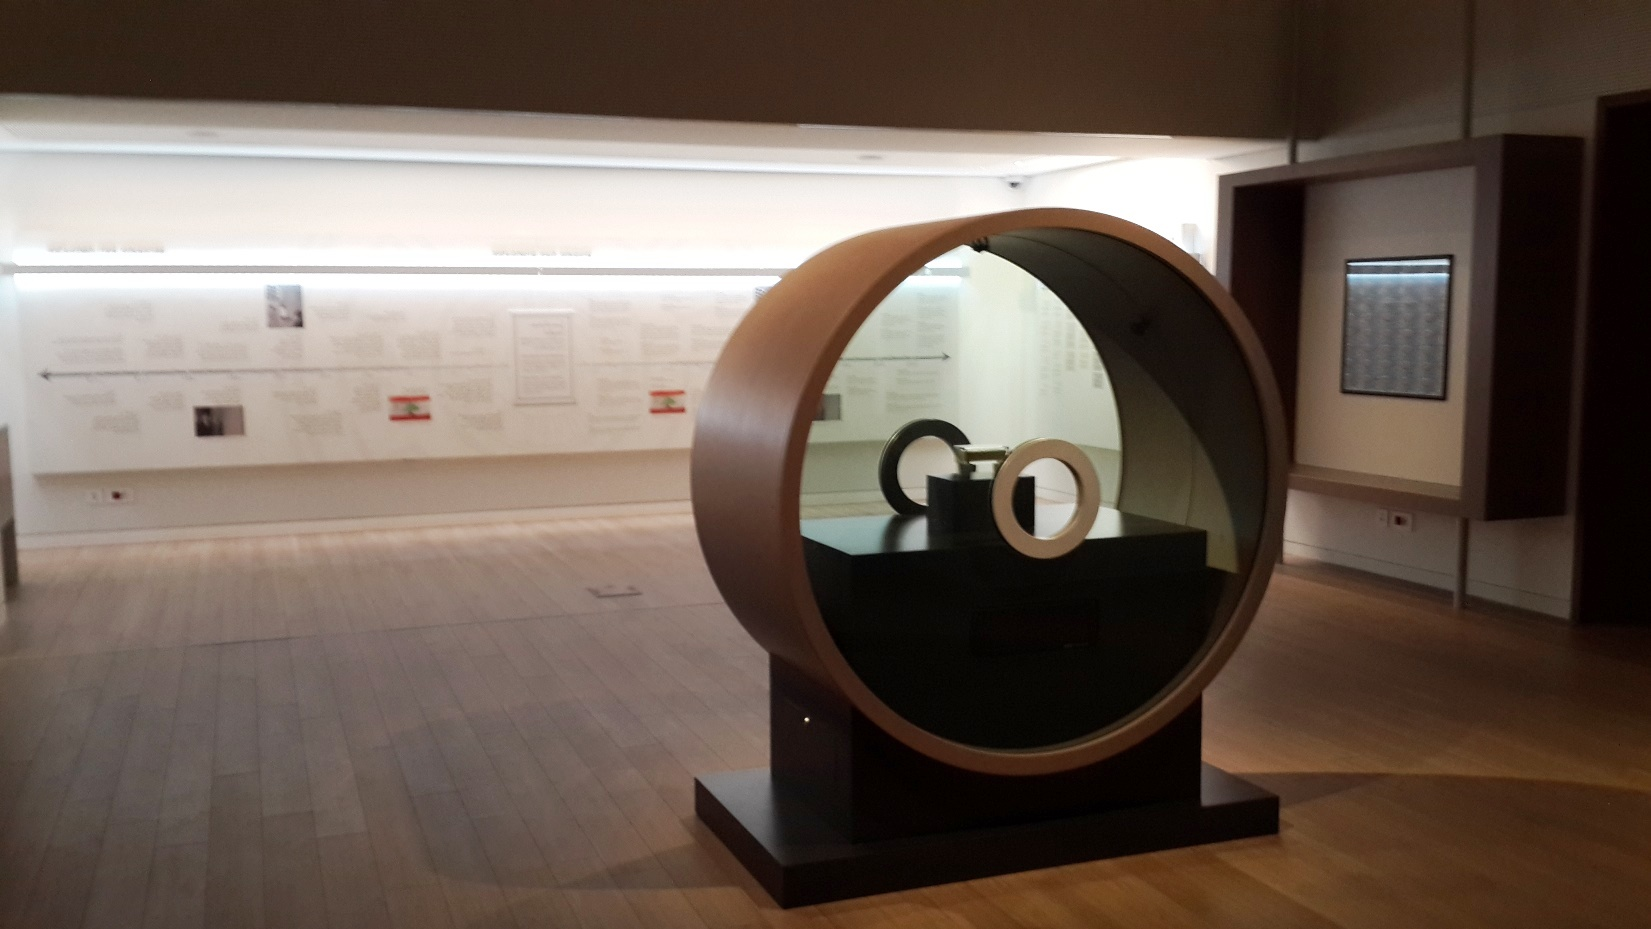 Banque du Liban Museum Beirut, Bank of Lebanon Museum Opens its Doors! | The Opinion